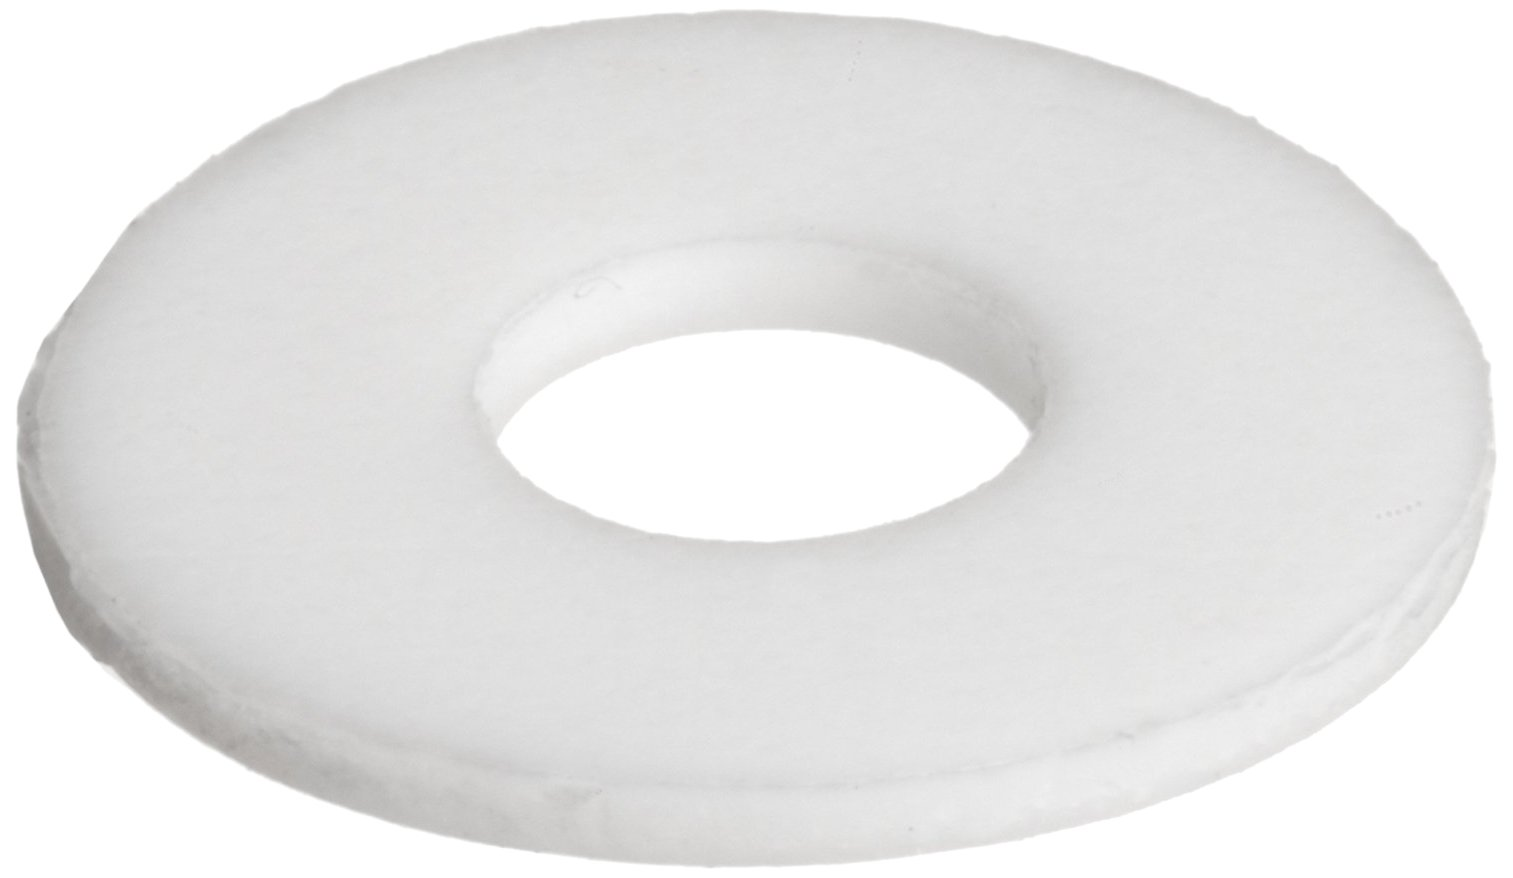 PTFE (Polytetrafluoroethylene) Flat Washer, 1/4'' Hole Size, 0.253'' ID, 0.500'' OD, 0.062'' Nominal Thickness, Made in US (Pack of 50) by Small Parts